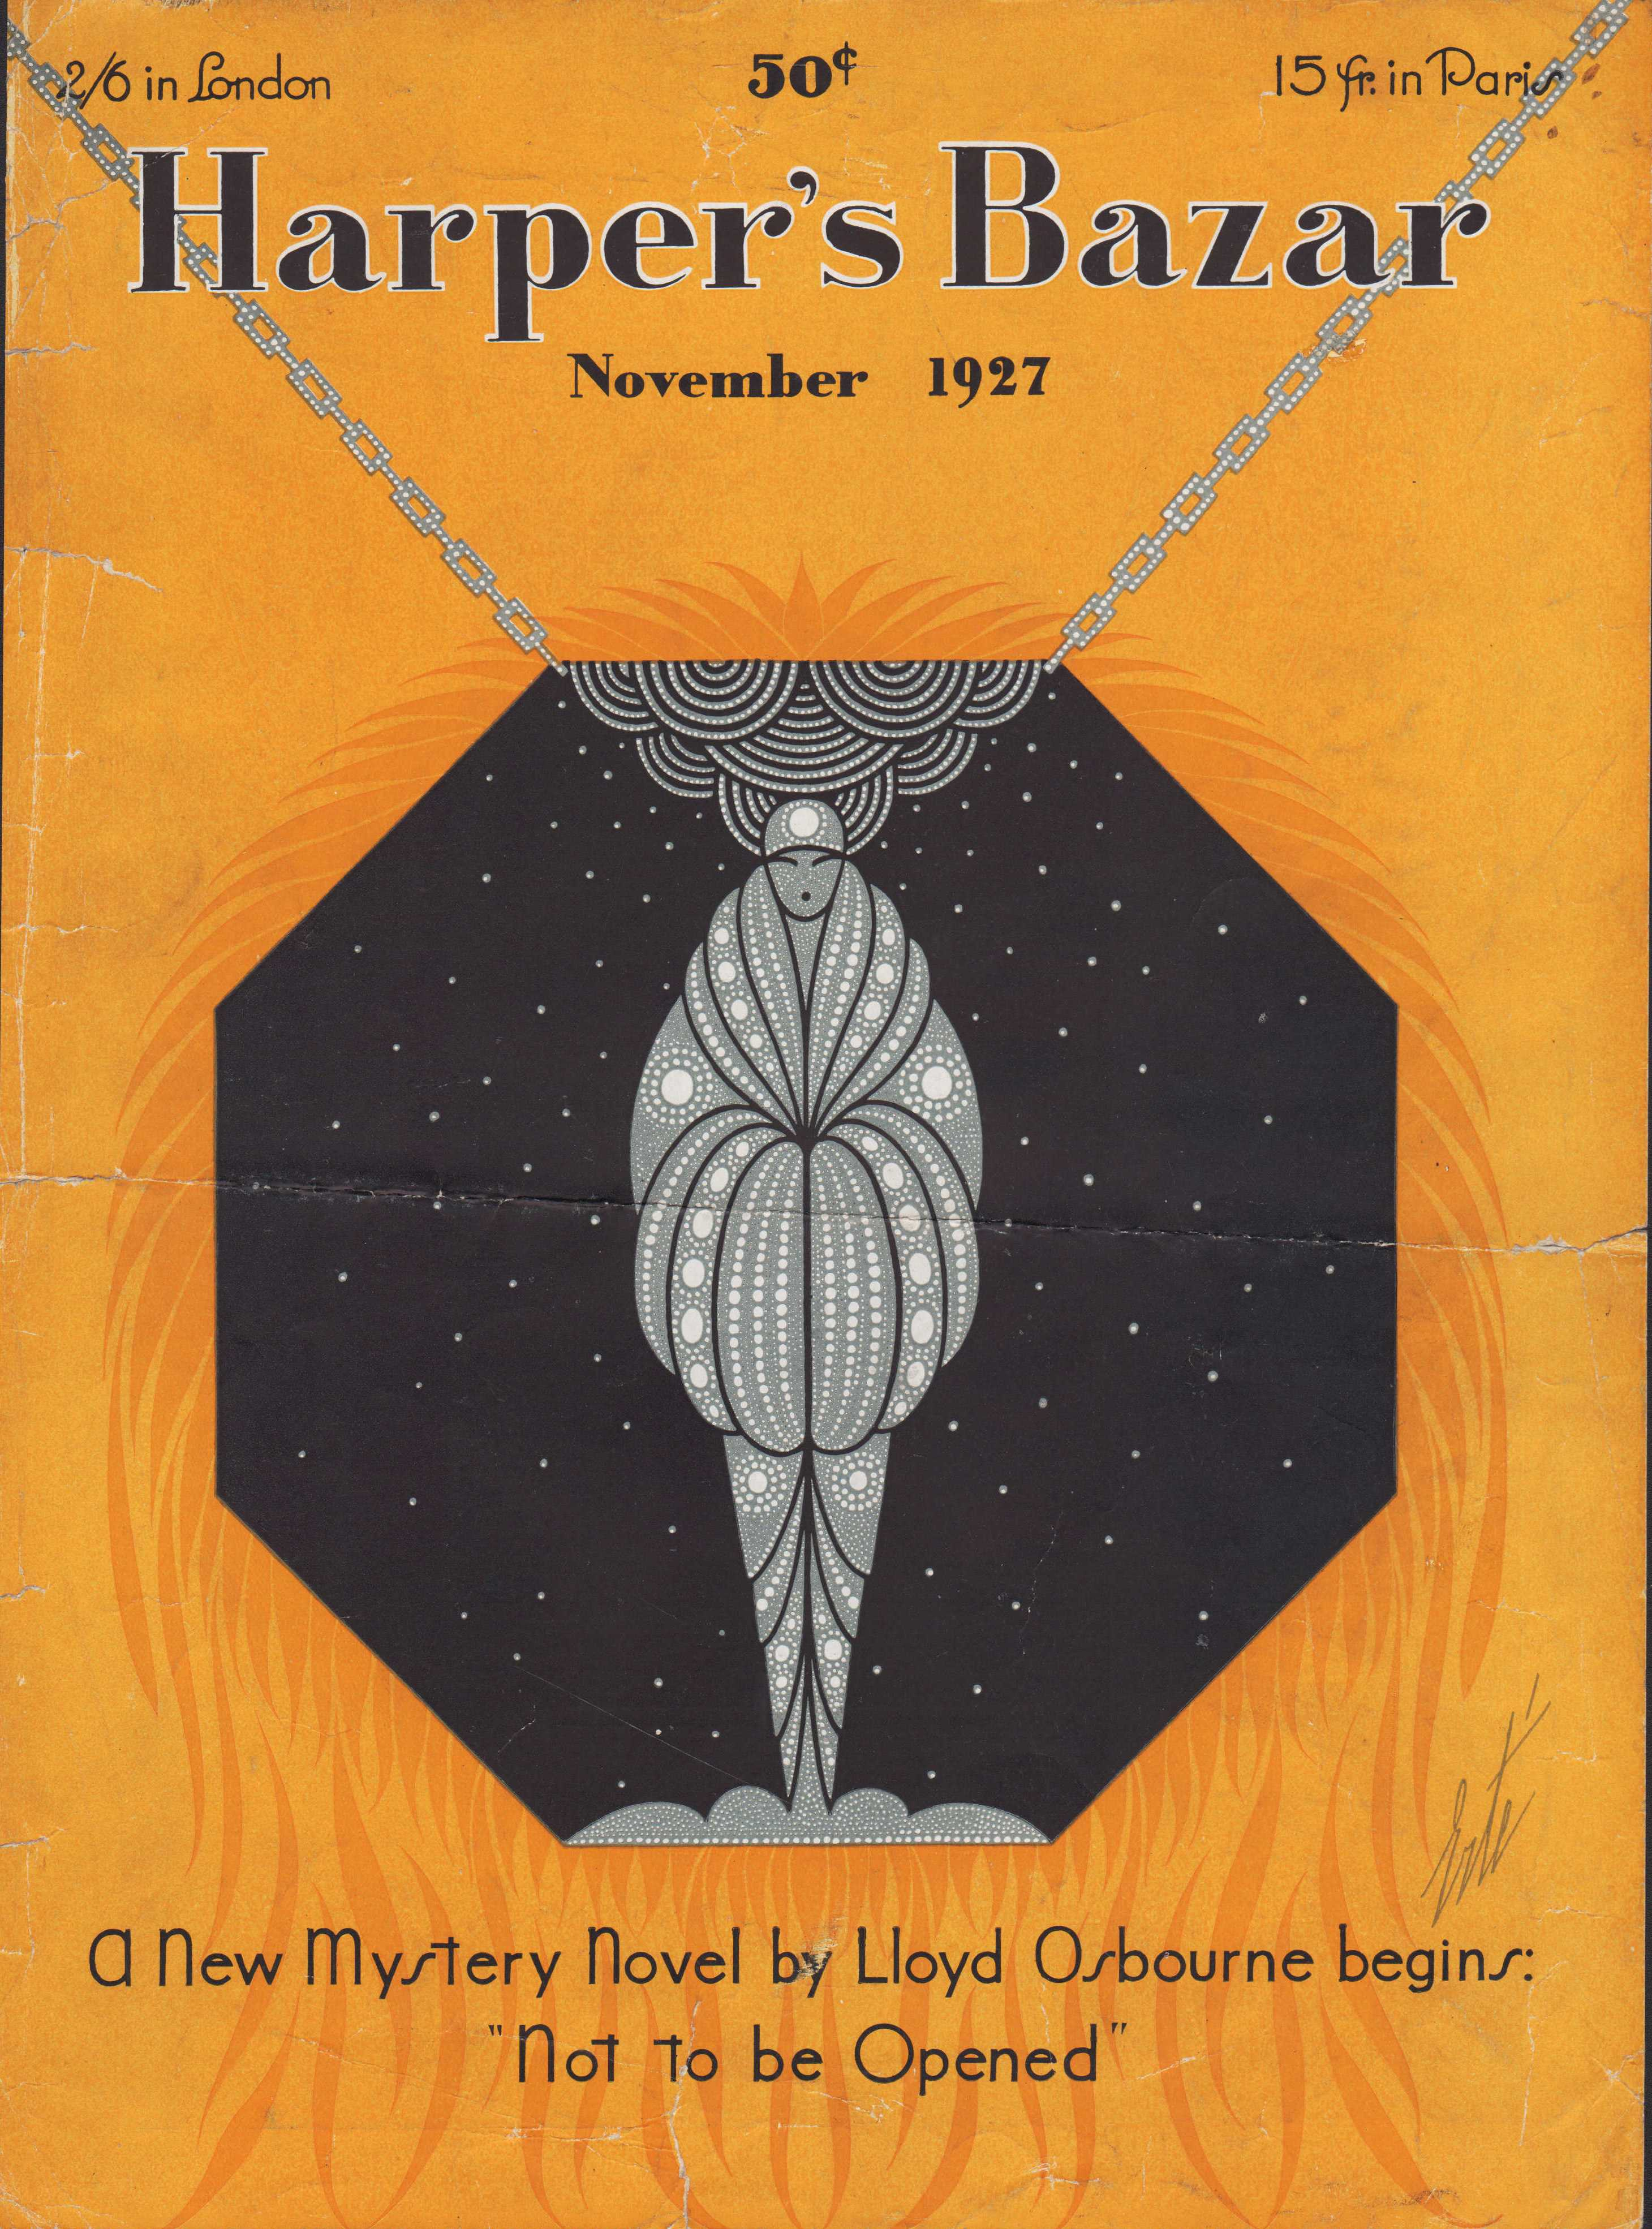 Image for Harper's Bazar (Harper's Bazaar) November, 1927 - Cover Only